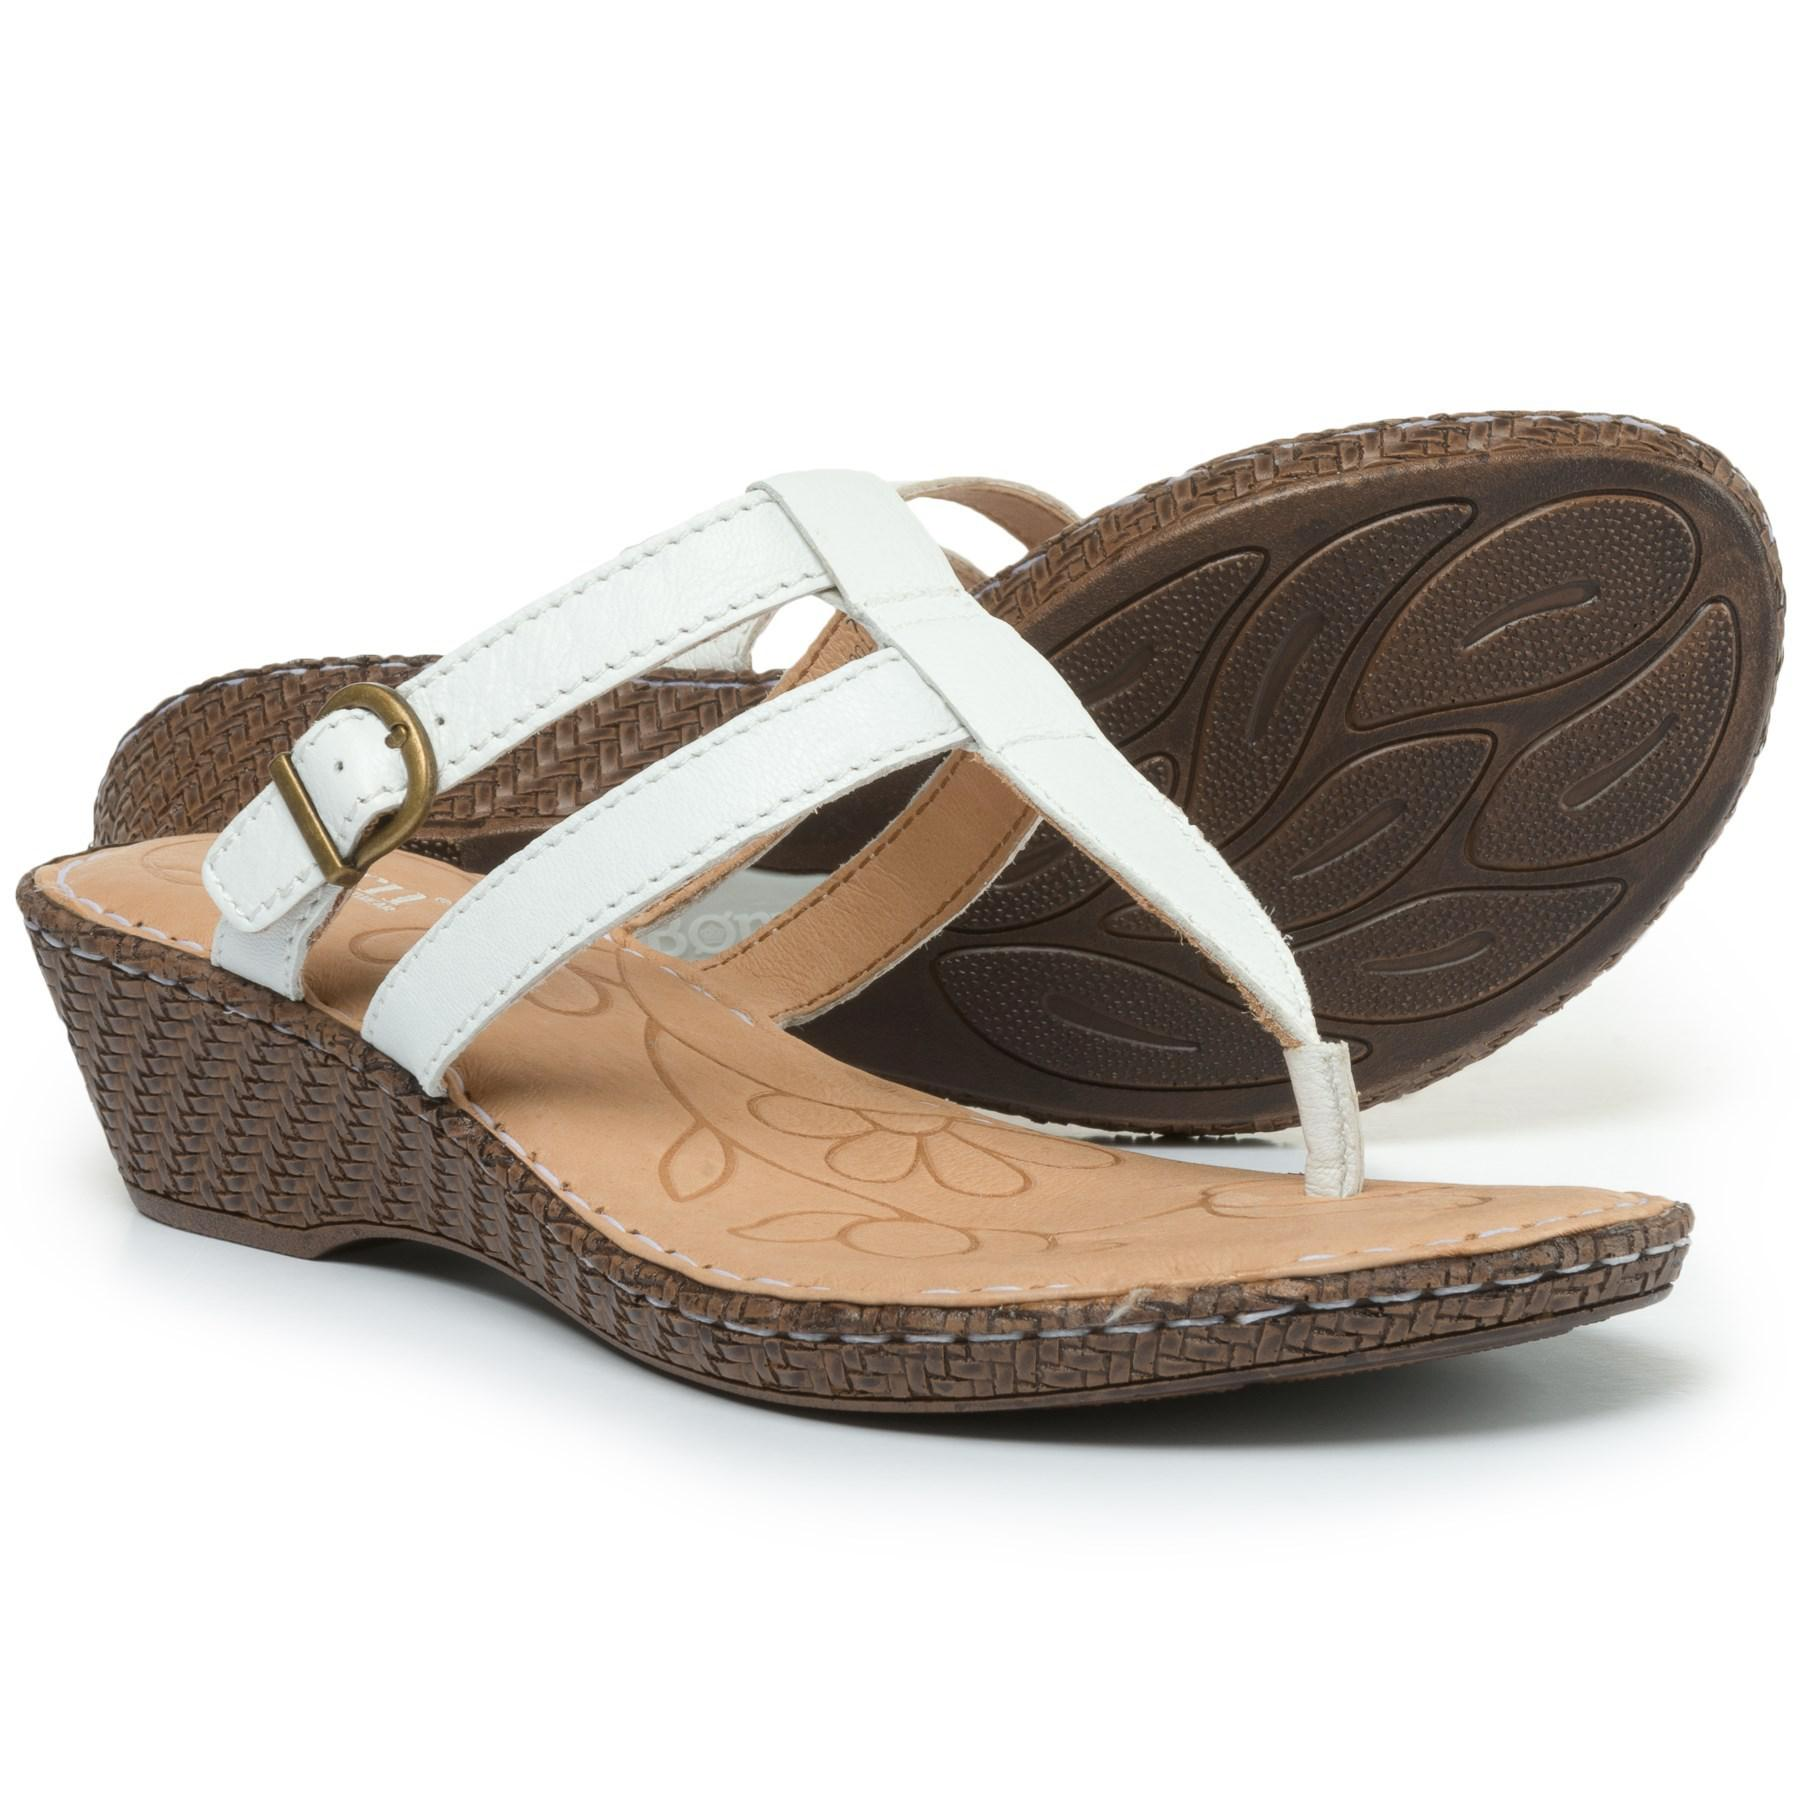 c2900a617789 Lyst - Born Wedge Sandals in White